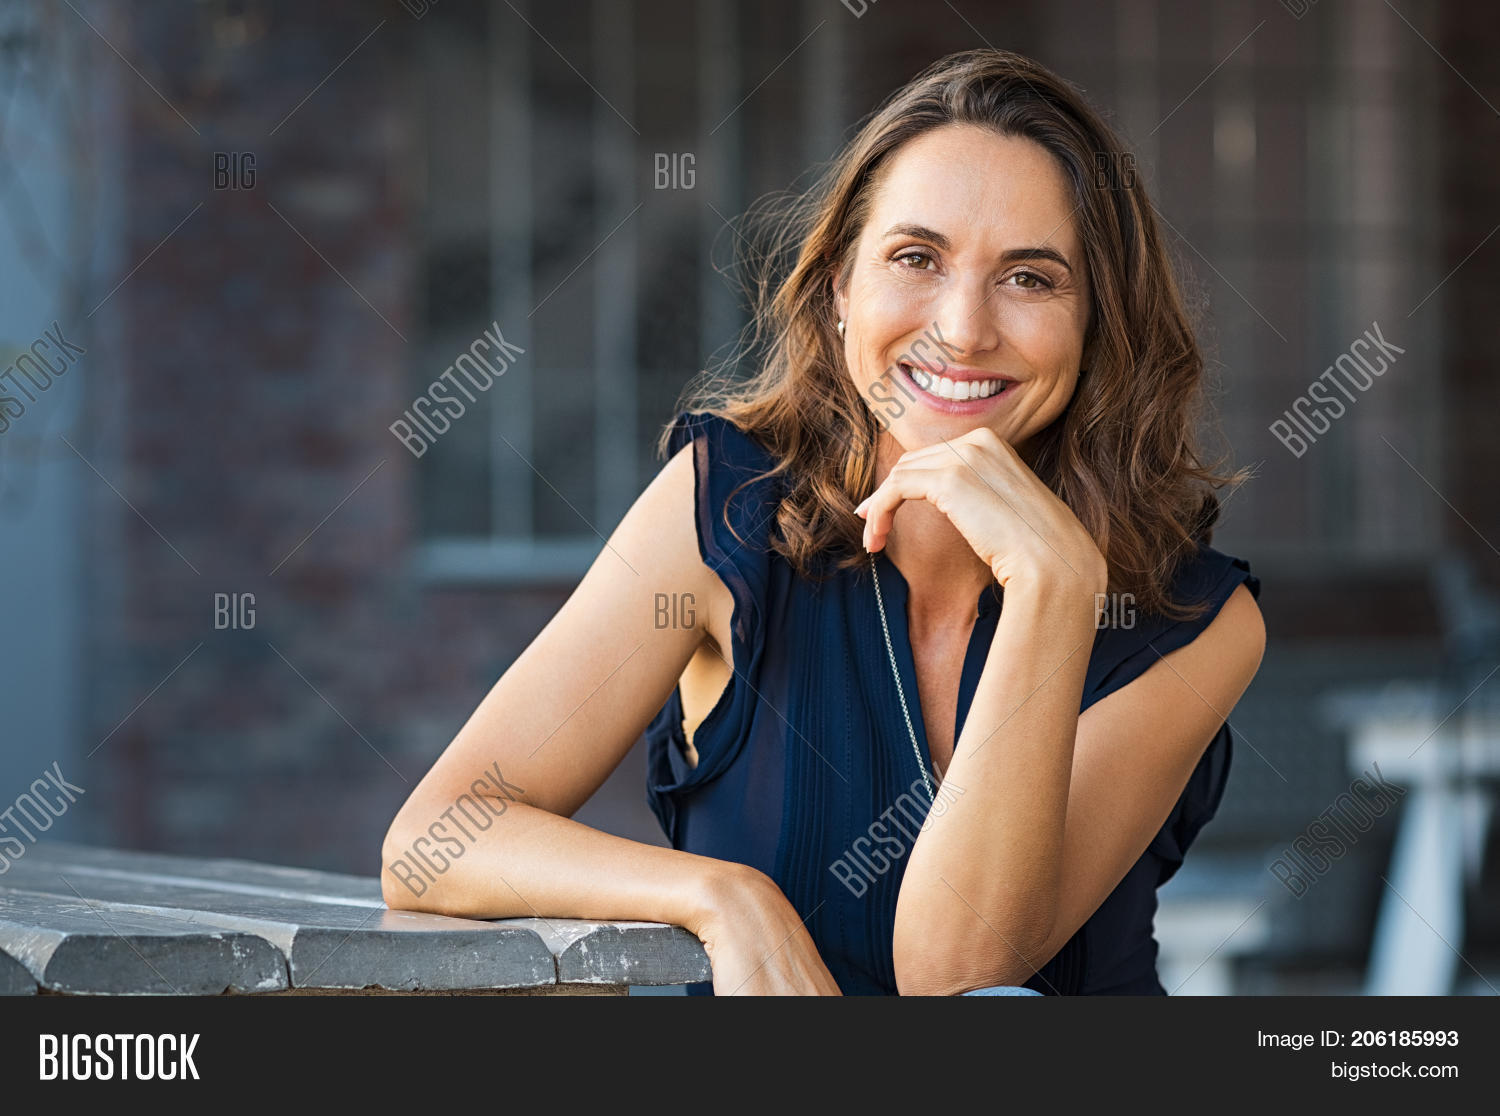 adult,attractive,beautiful,beautiful woman,brunette,brunette woman,cafeteria,carefree,carefree woman,cheerful,coffee shop,confident,enjoy,fresh,friendly,hand on chin,happy,happy woman,hispanic,hispanic woman,joy,latin,latin woman,leisure,looking,looking at camera,mature,mid,mid adult woman,outdoor,people,person,portrait,portrait woman,positive,relax,resting,satisfaction,sitting,sitting outside,smile,smiling woman,successful woman,summer,vitality,woman,woman relaxing,woman relaxing on beach